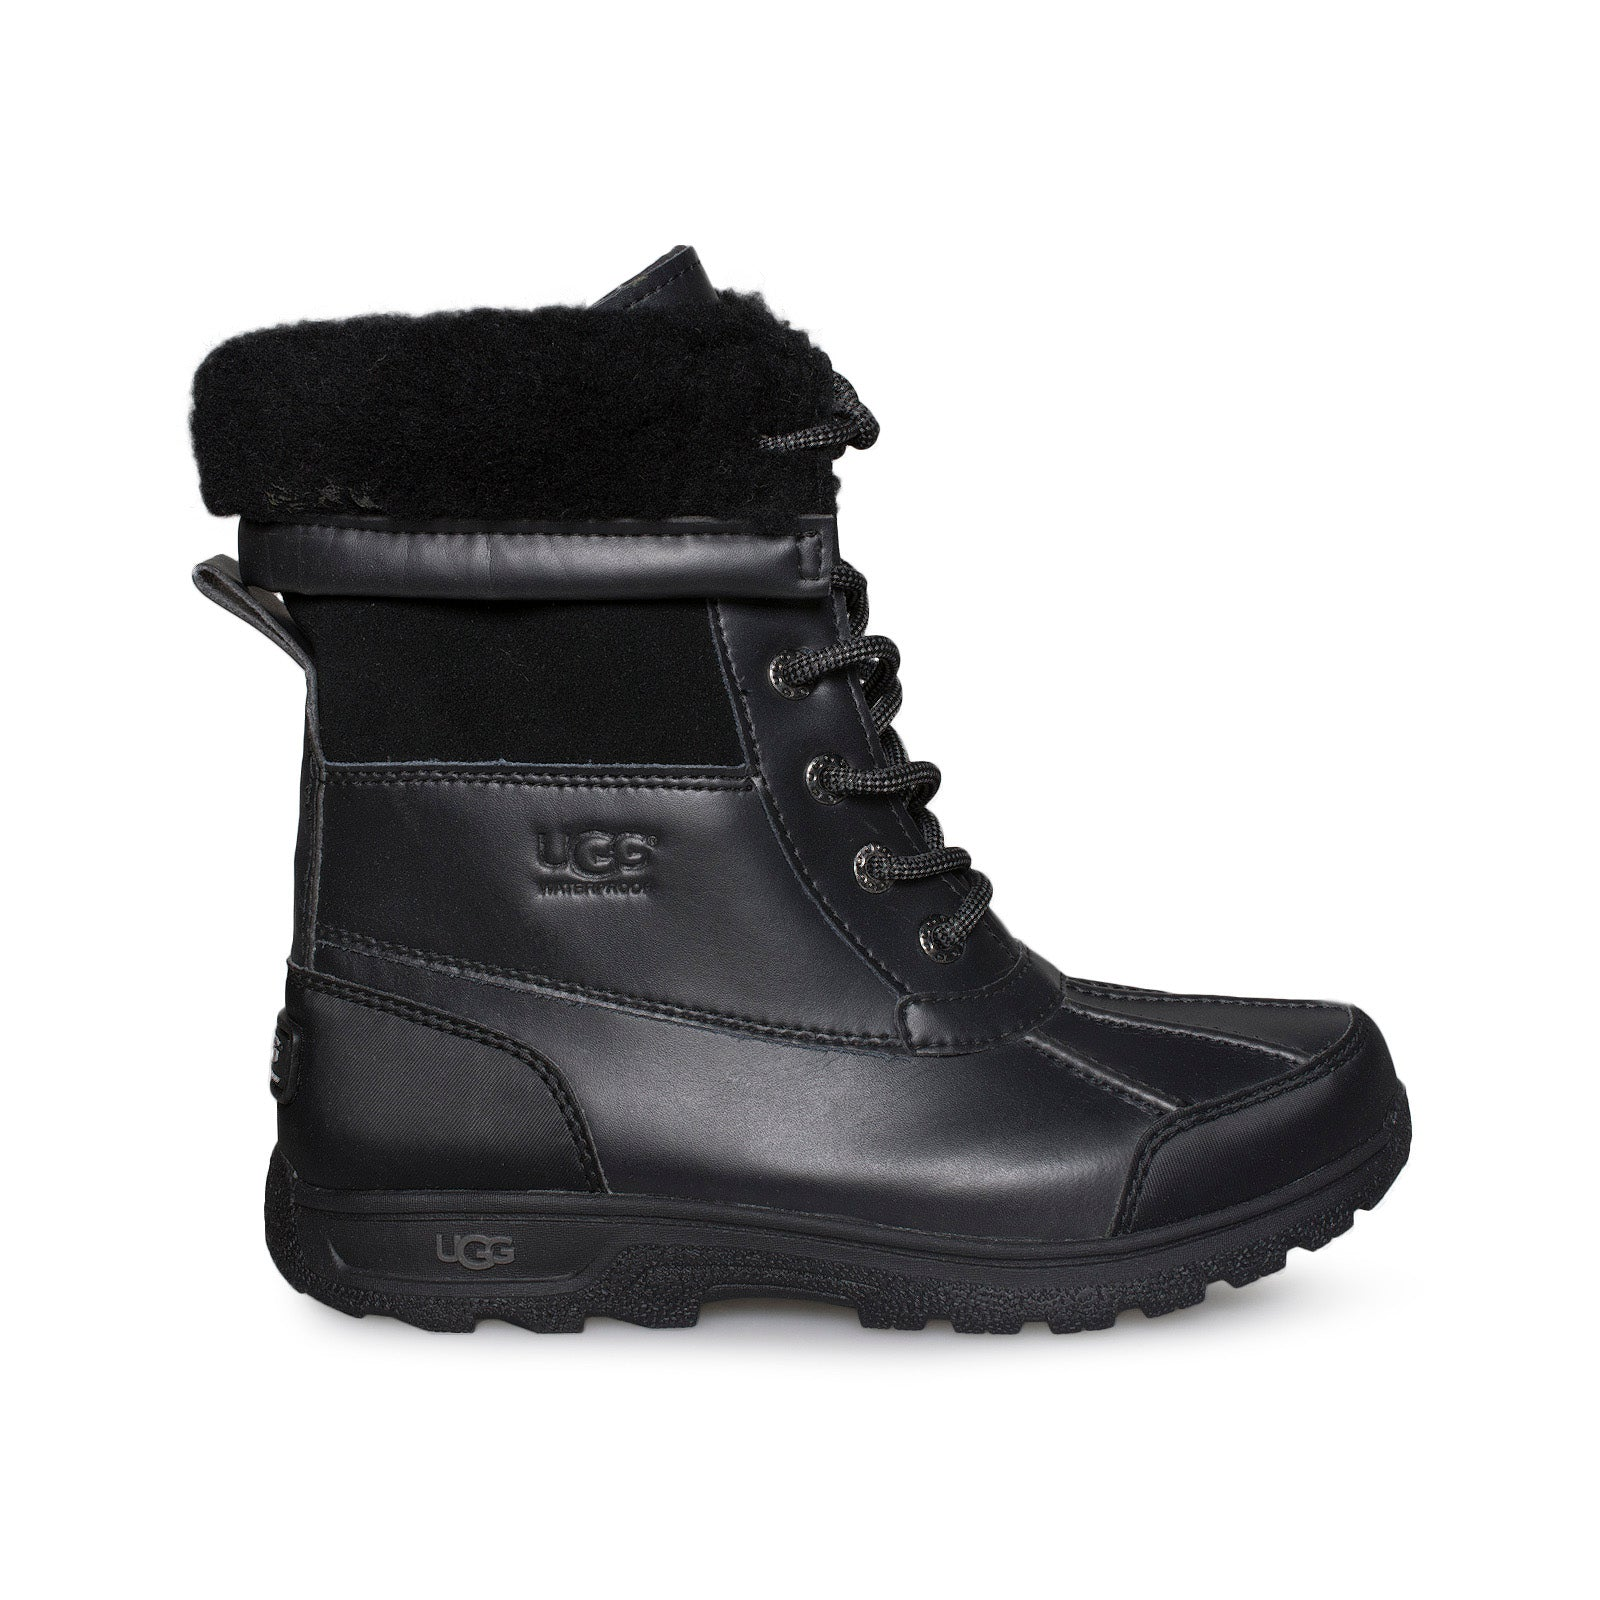 1f46e14754a UGG Butte II Black Boots - Youth